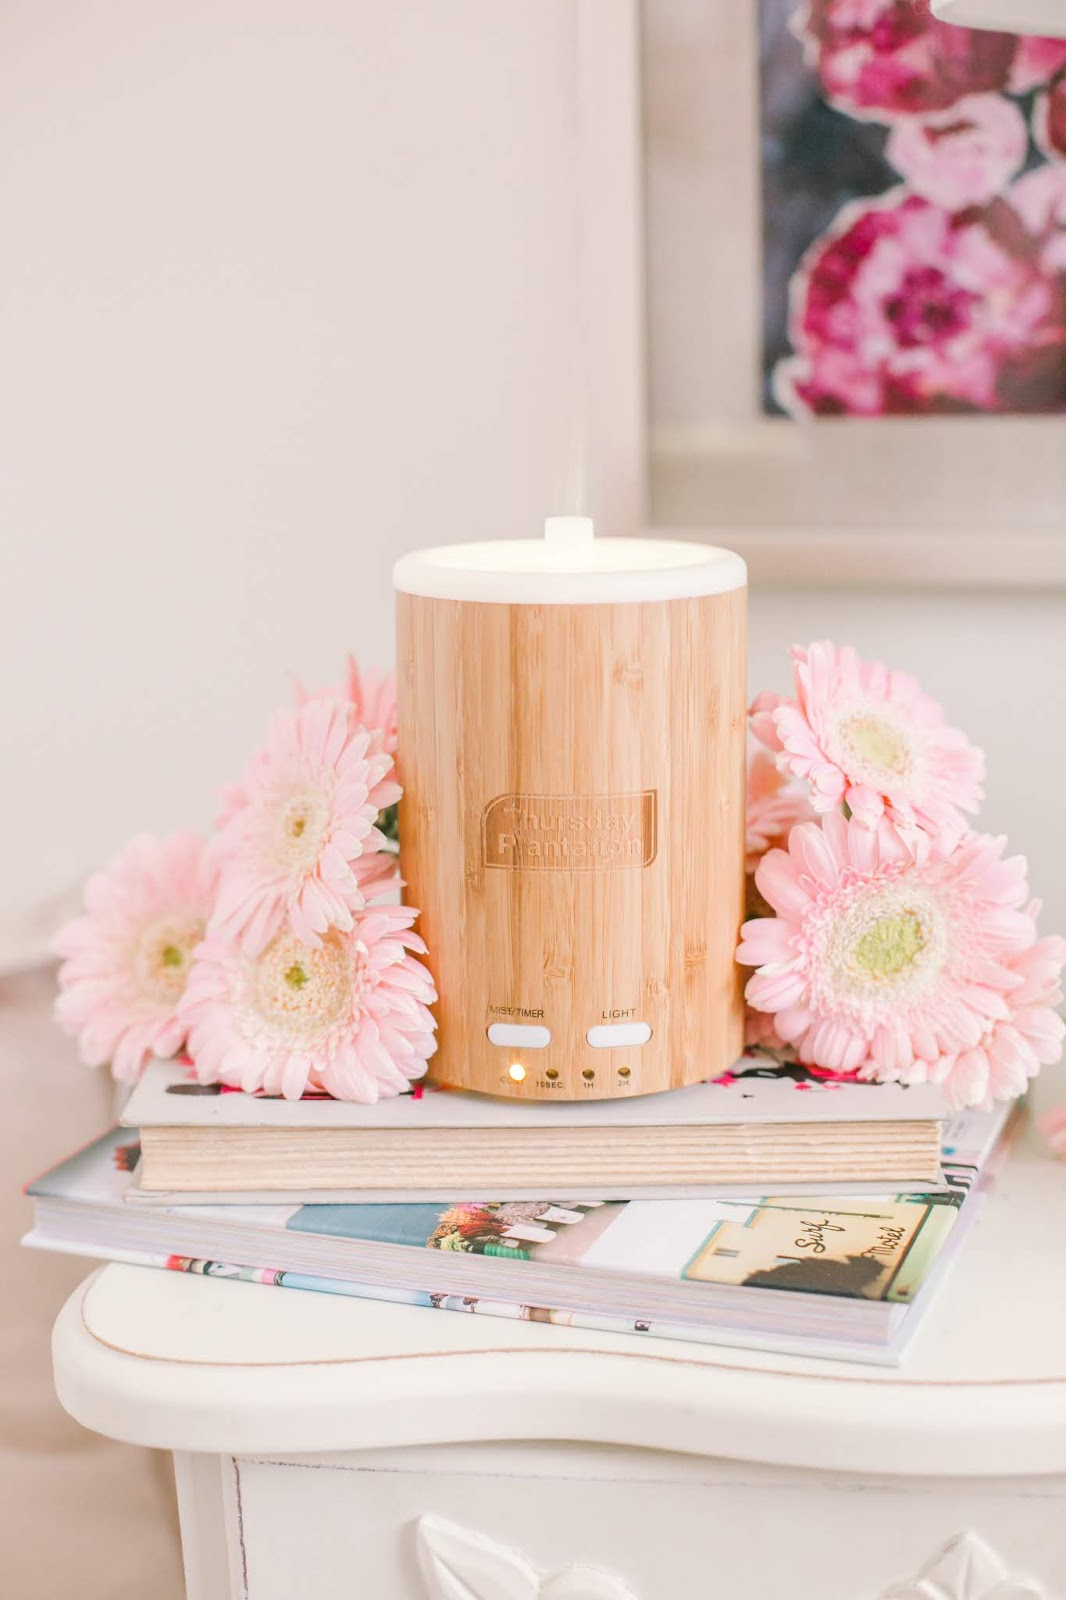 Bijuleni - Why You Need an Essential Oil Diffuser At Home